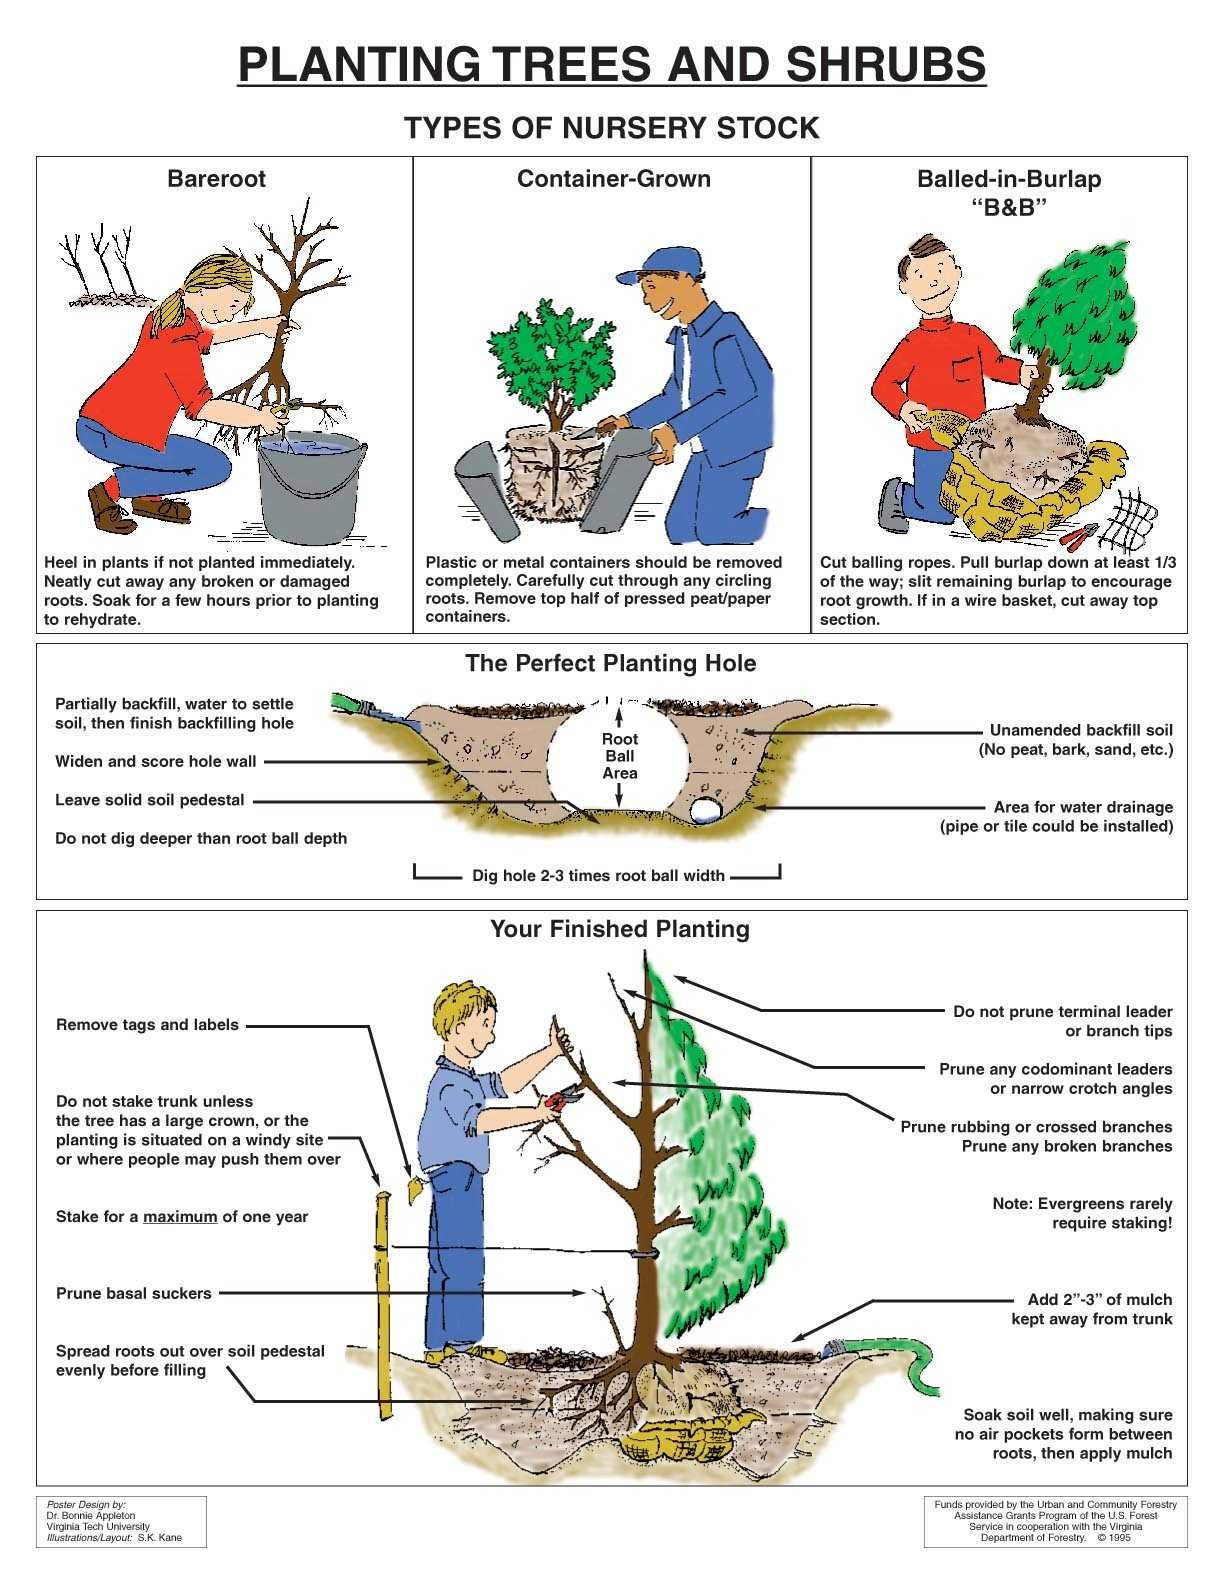 handout_Planting-Trees-Shrubs